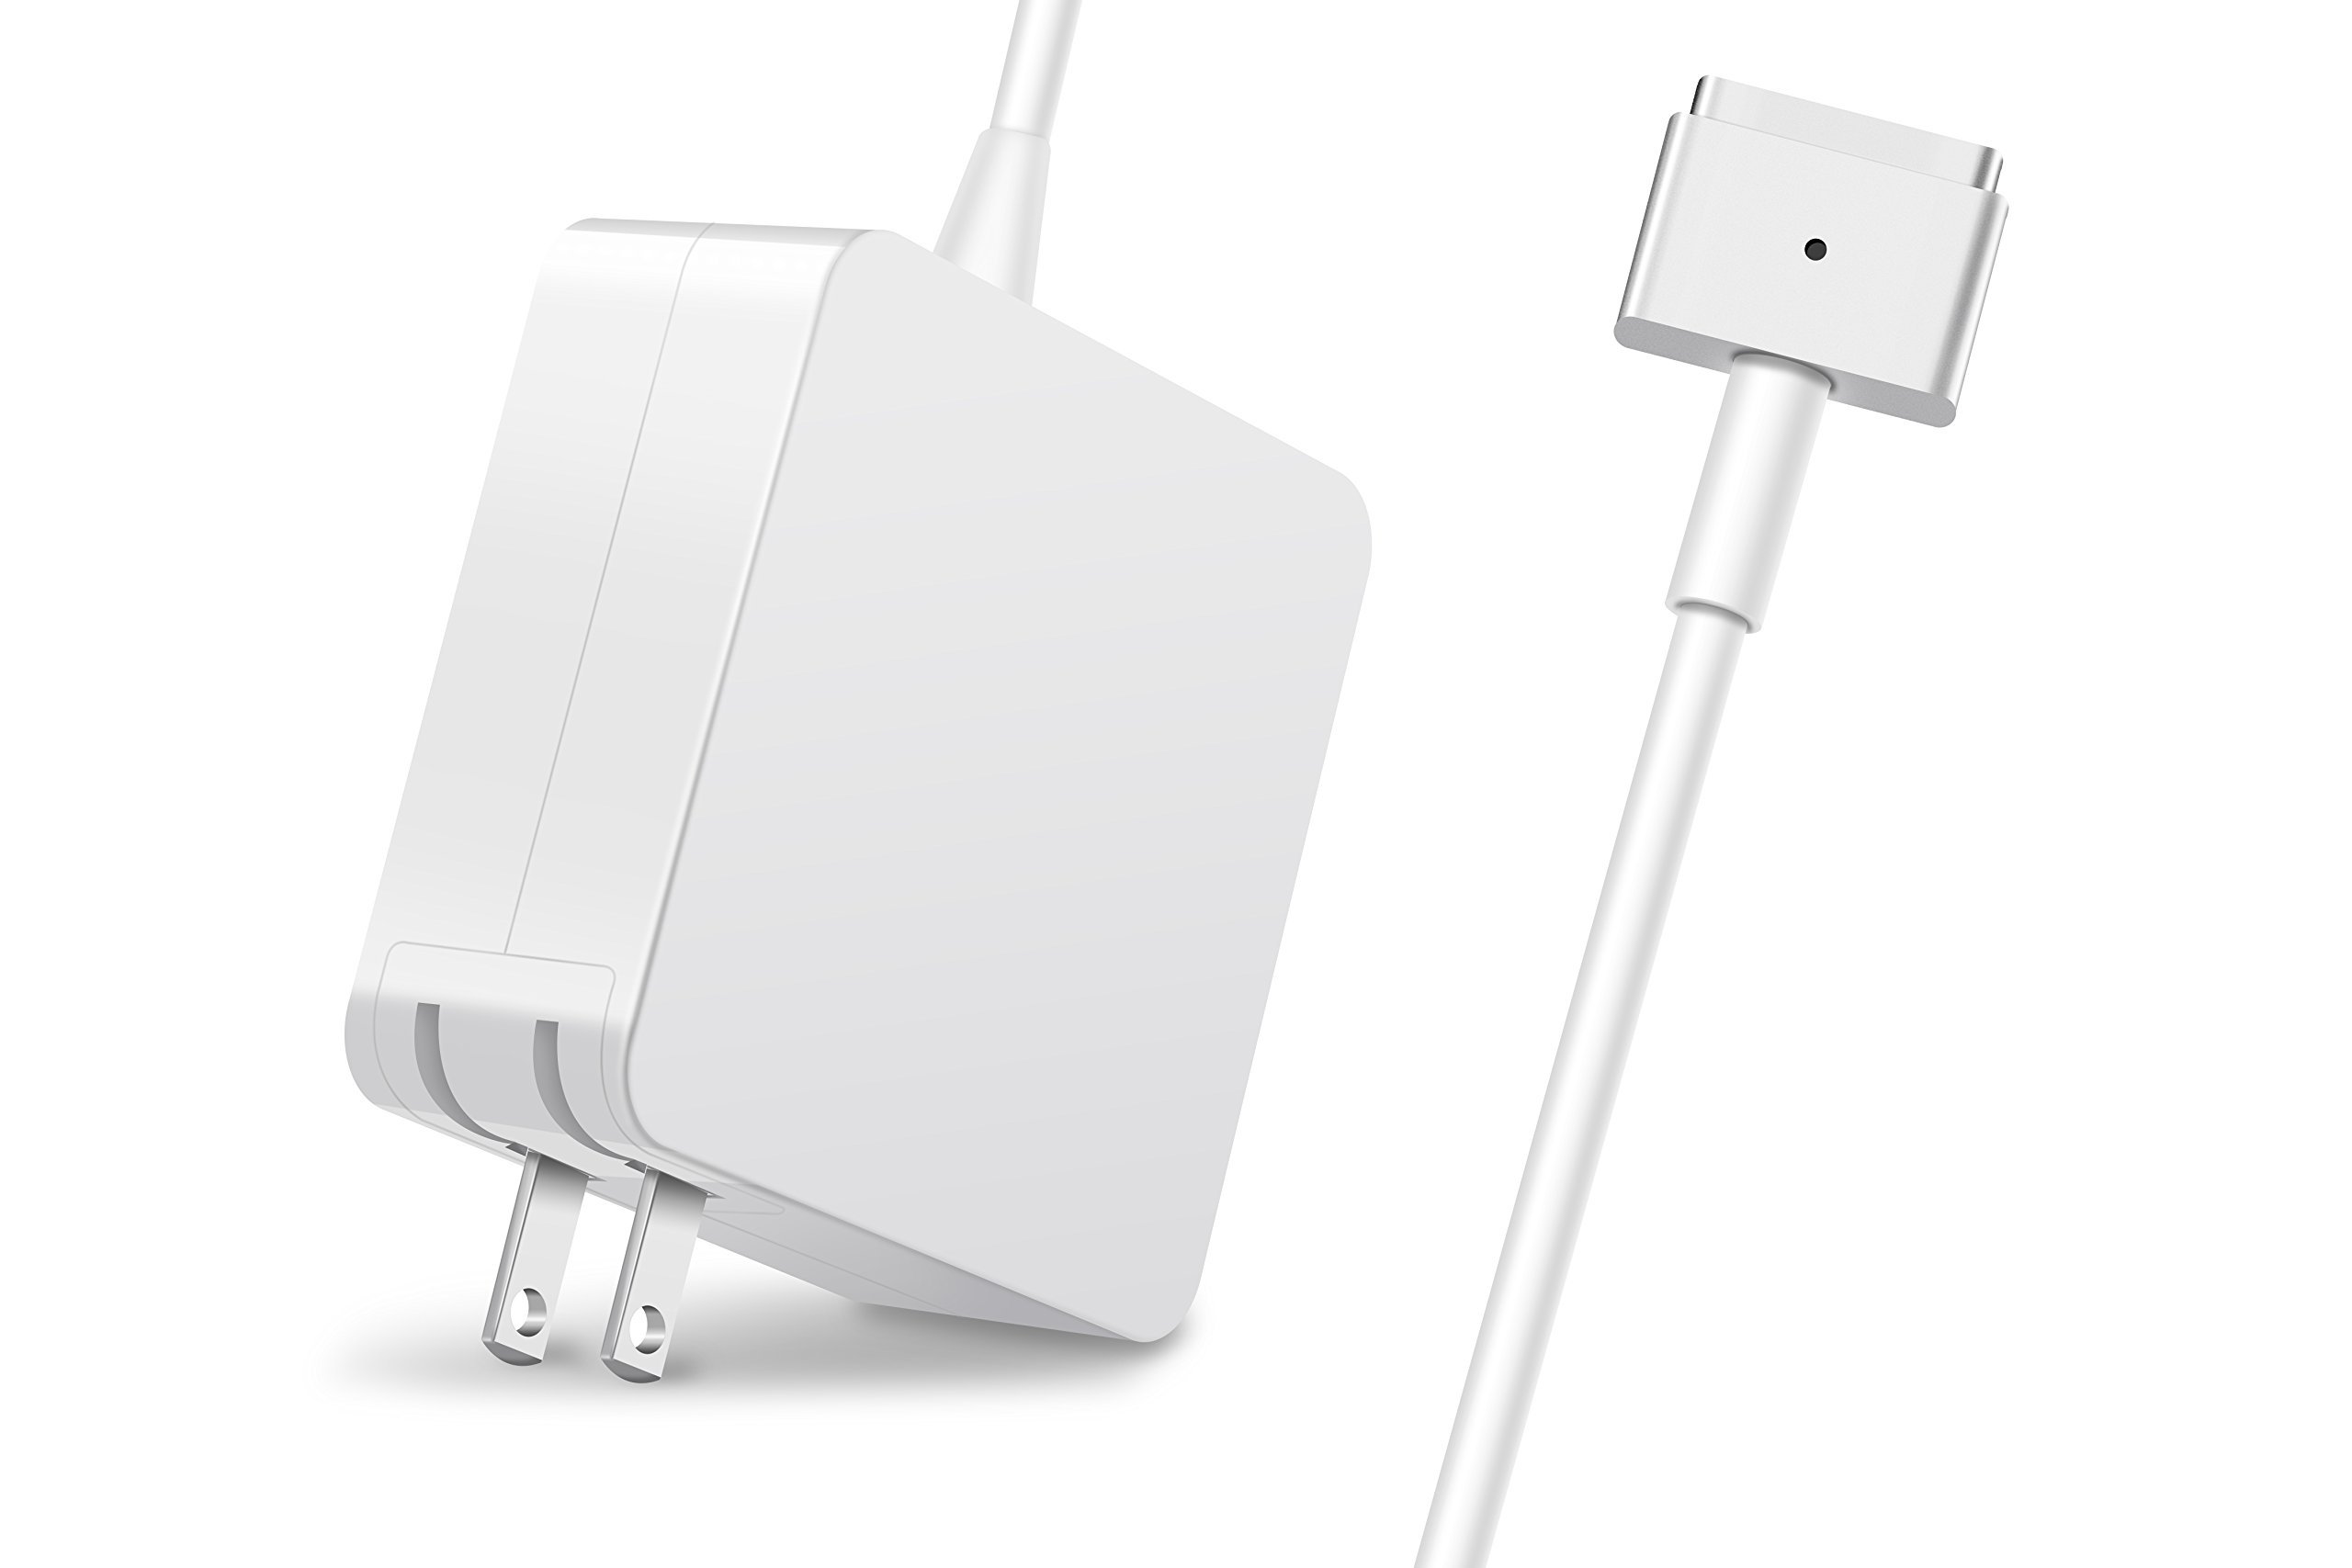 GSNOW Charger Compatible with MacBook Pro Charger – 60W Magsafe 2 Power Adapter for MacBook 11 and 13 Inch – After 2012